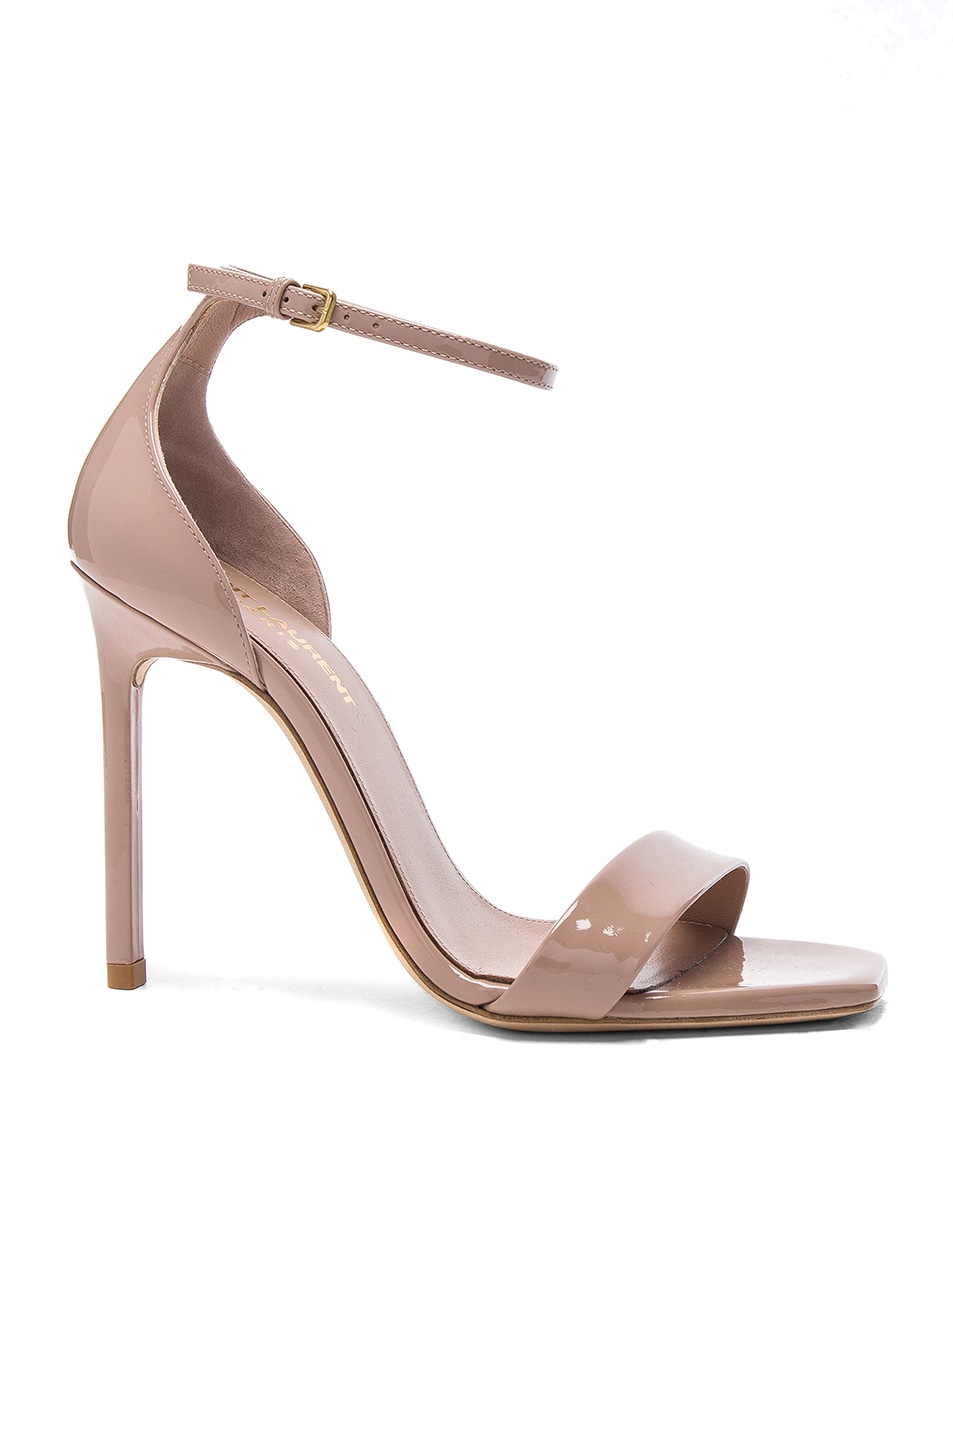 Image 1 of Saint Laurent Patent Amber Ankle Strap Heels in Nude Pink